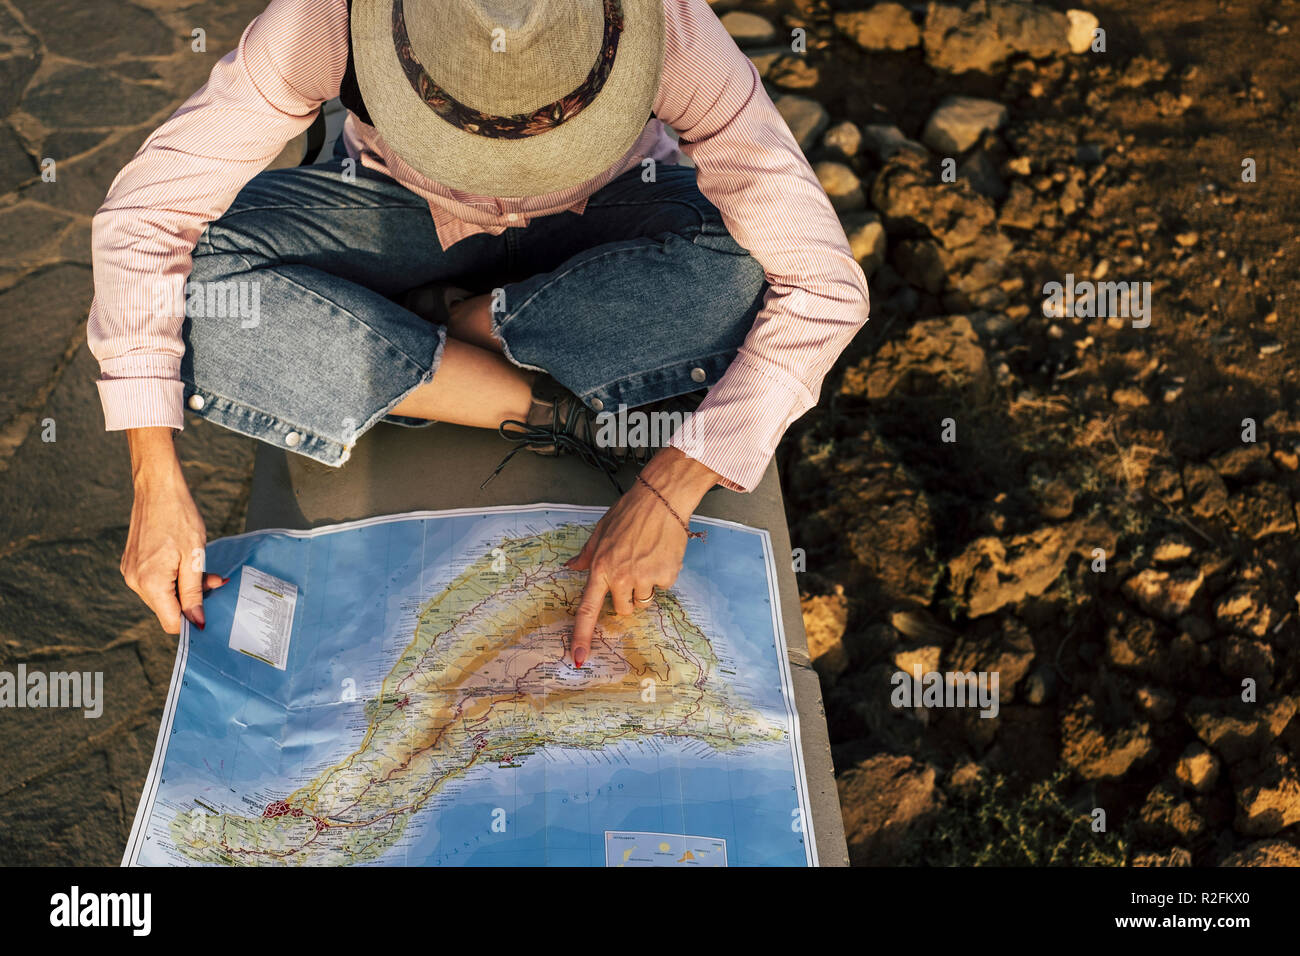 above aerial view of nice adventurer woman looking on the map for her next stop and destination place loceation. tourism and alternative way to travel and discover the world. wanderlust and happy lifestyle concept for milennial people - Stock Image